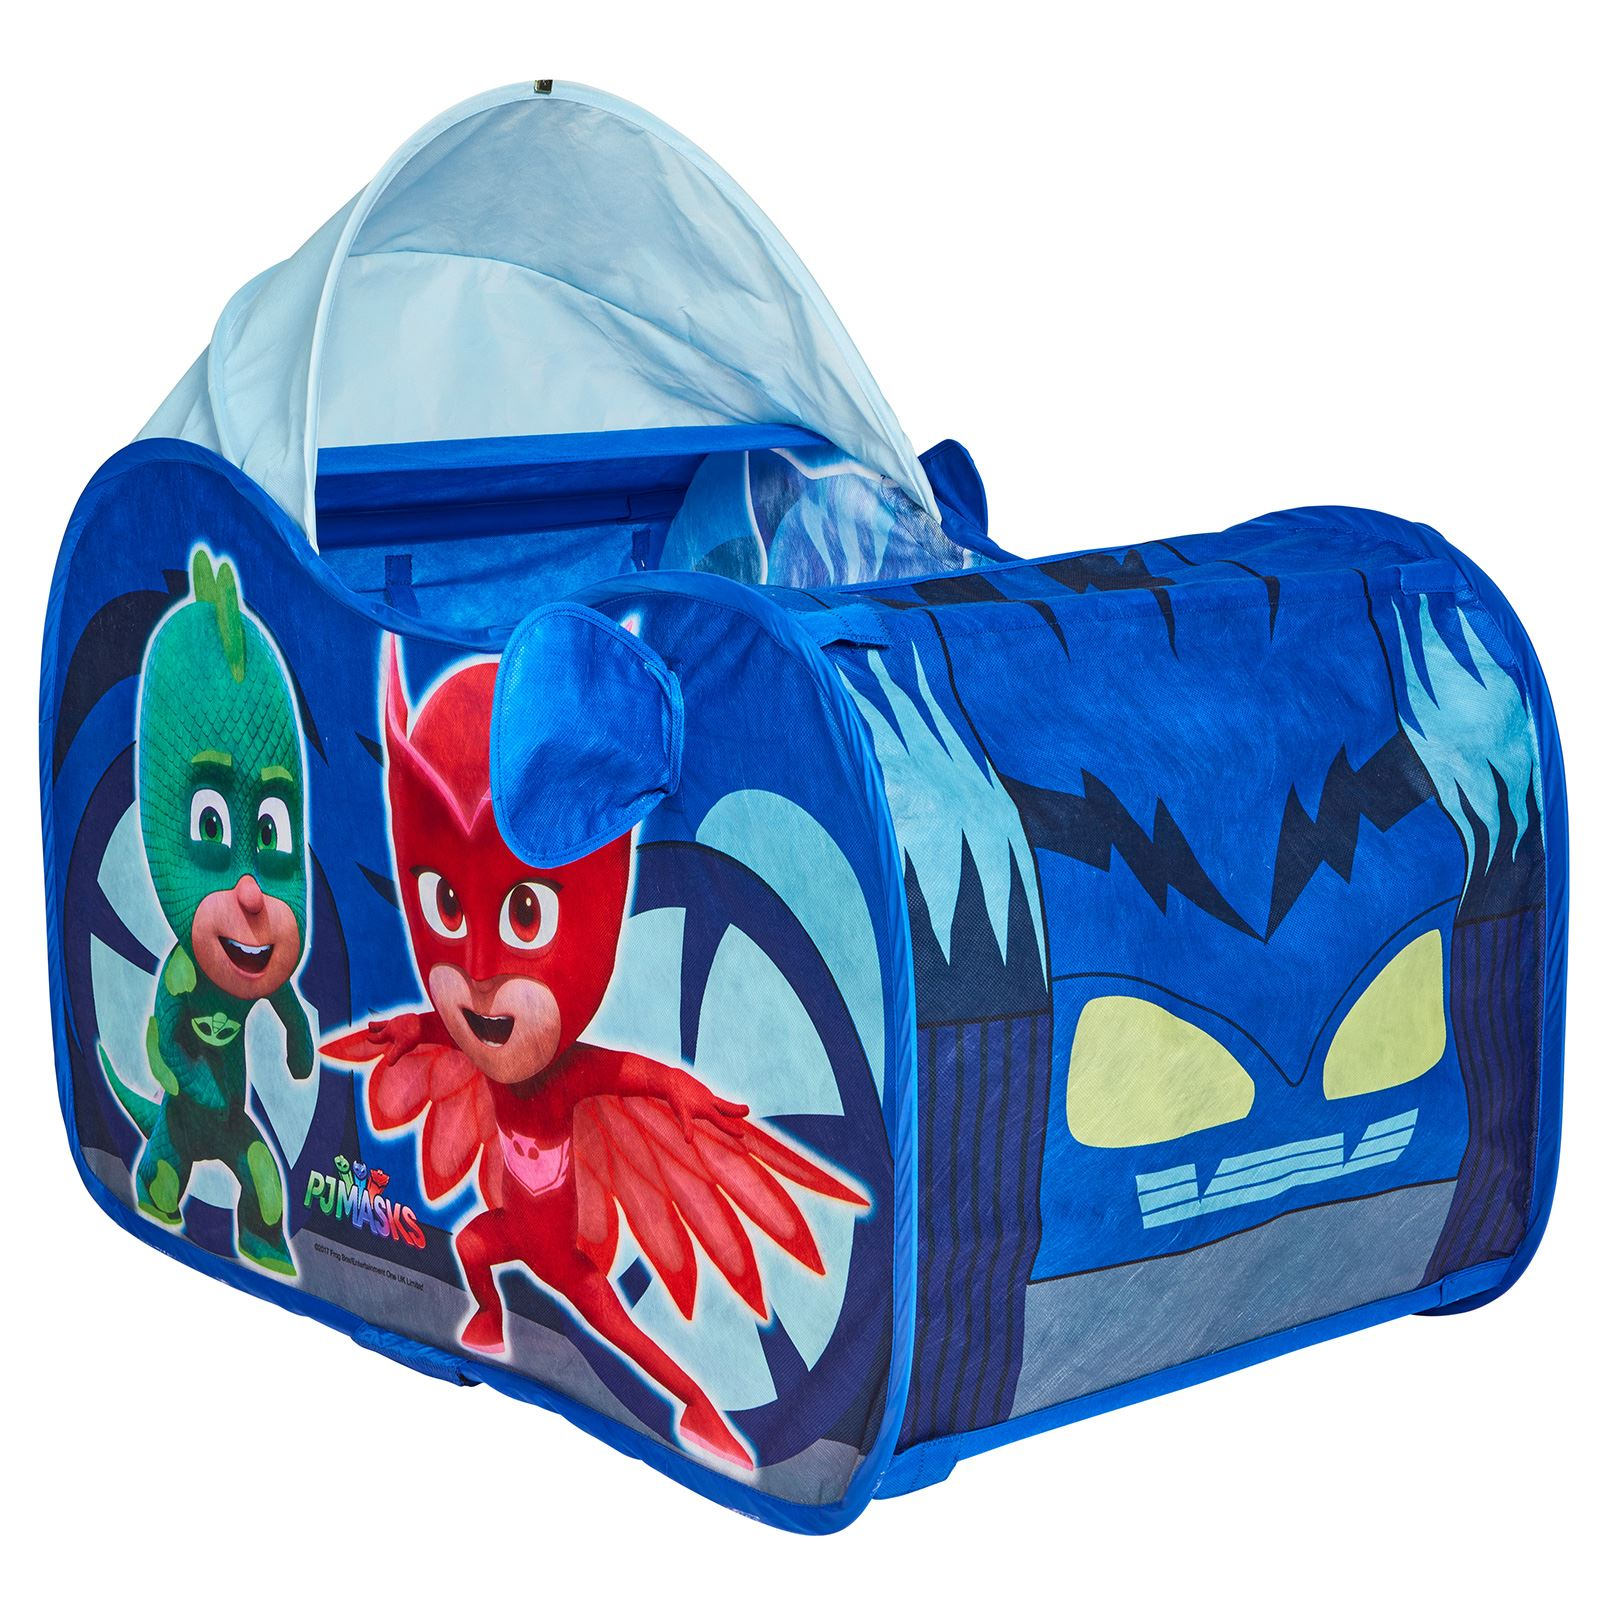 PJ MASKS CATBOY CAR PLAY TENT CHILDRENS FUN INDOOR OUTDOOR PLAY TENT NEW  sc 1 st  eBay & PJ MASKS CATBOY CAR PLAY TENT CHILDRENS FUN INDOOR OUTDOOR PLAY ...